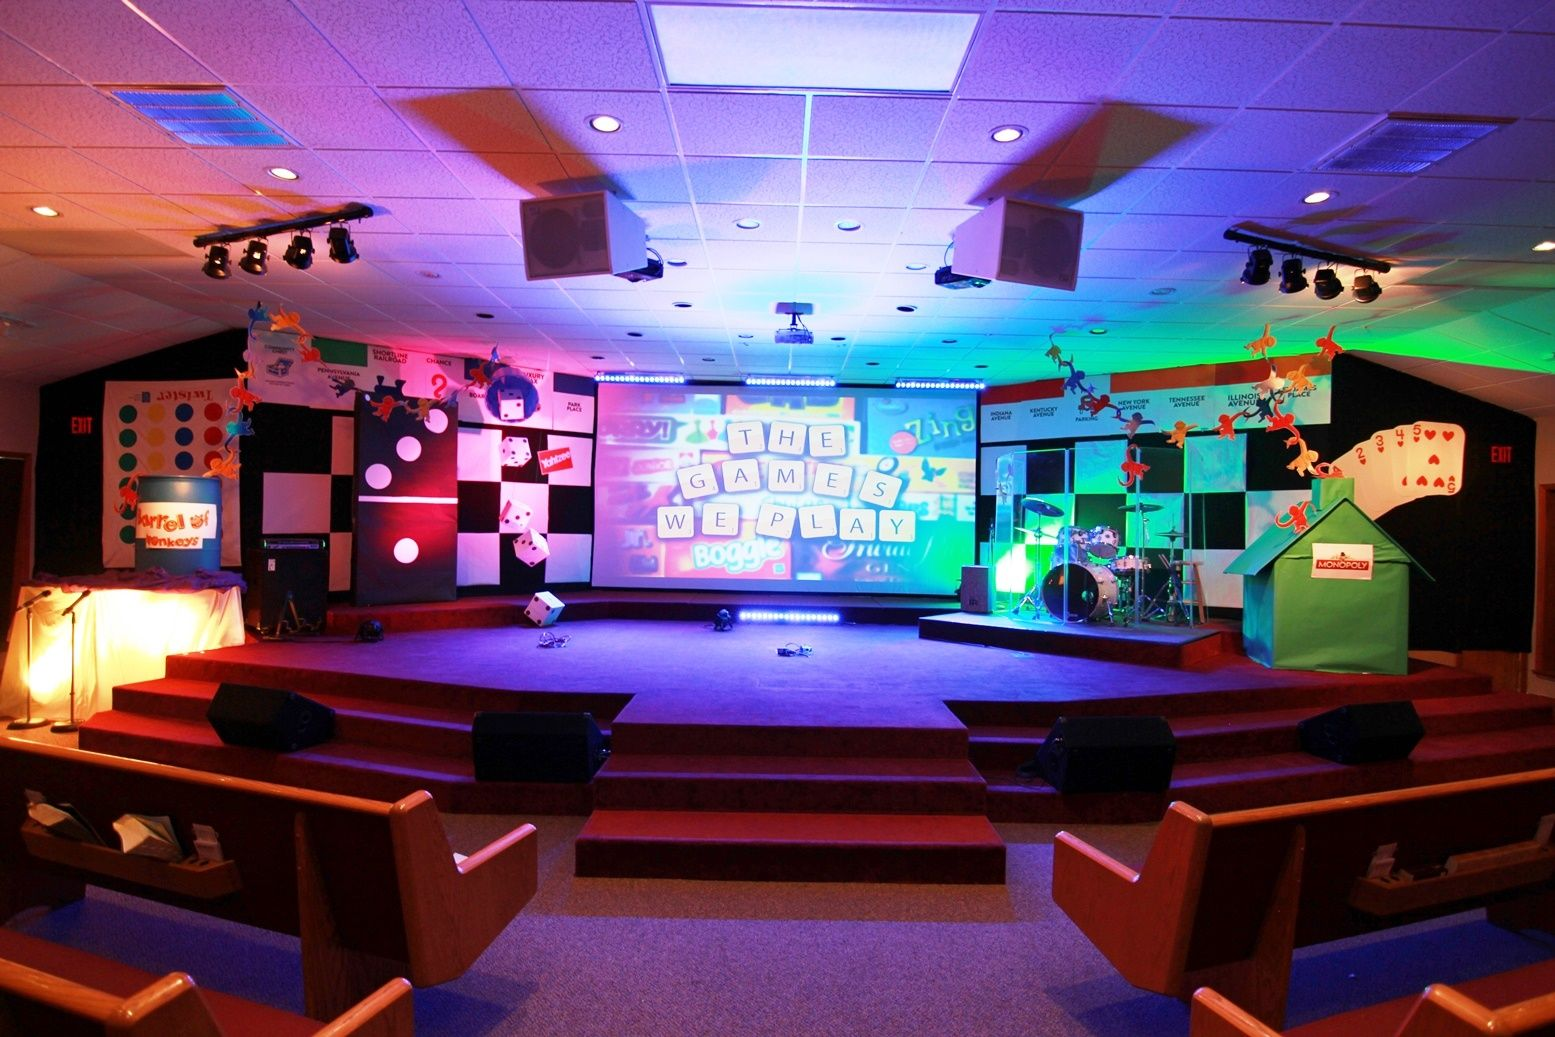 Pin by zemn on Stage Design Church stage, Church stage